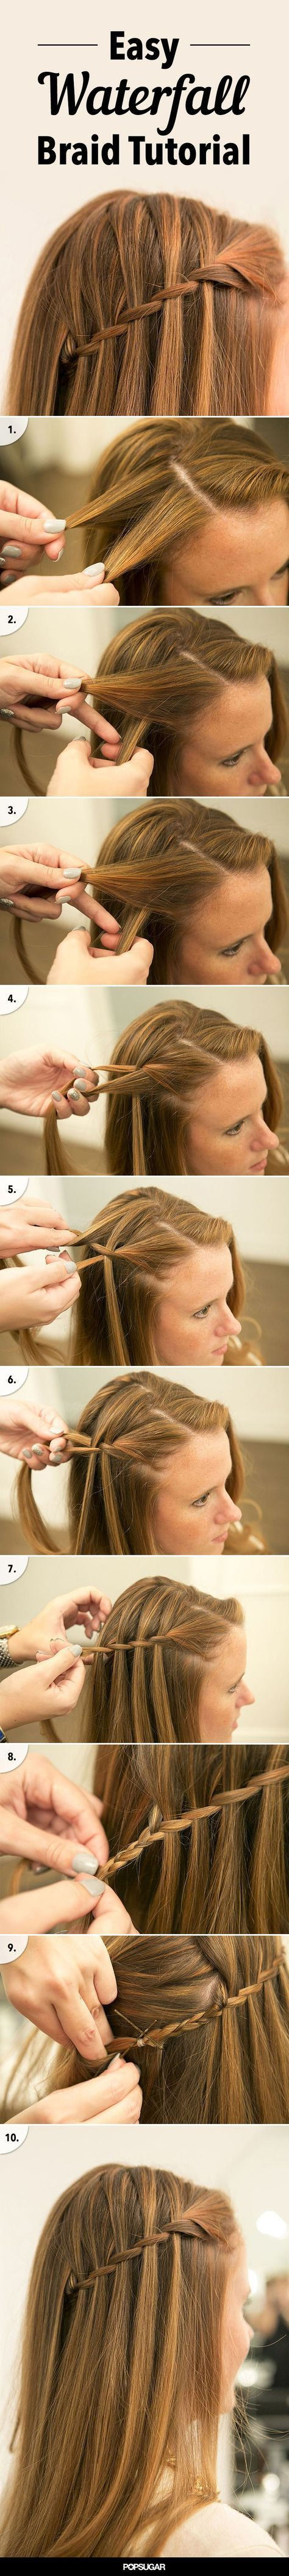 The Waterfall Braid Tutorial You Are Going to Want to Pin!  #hairtutorials